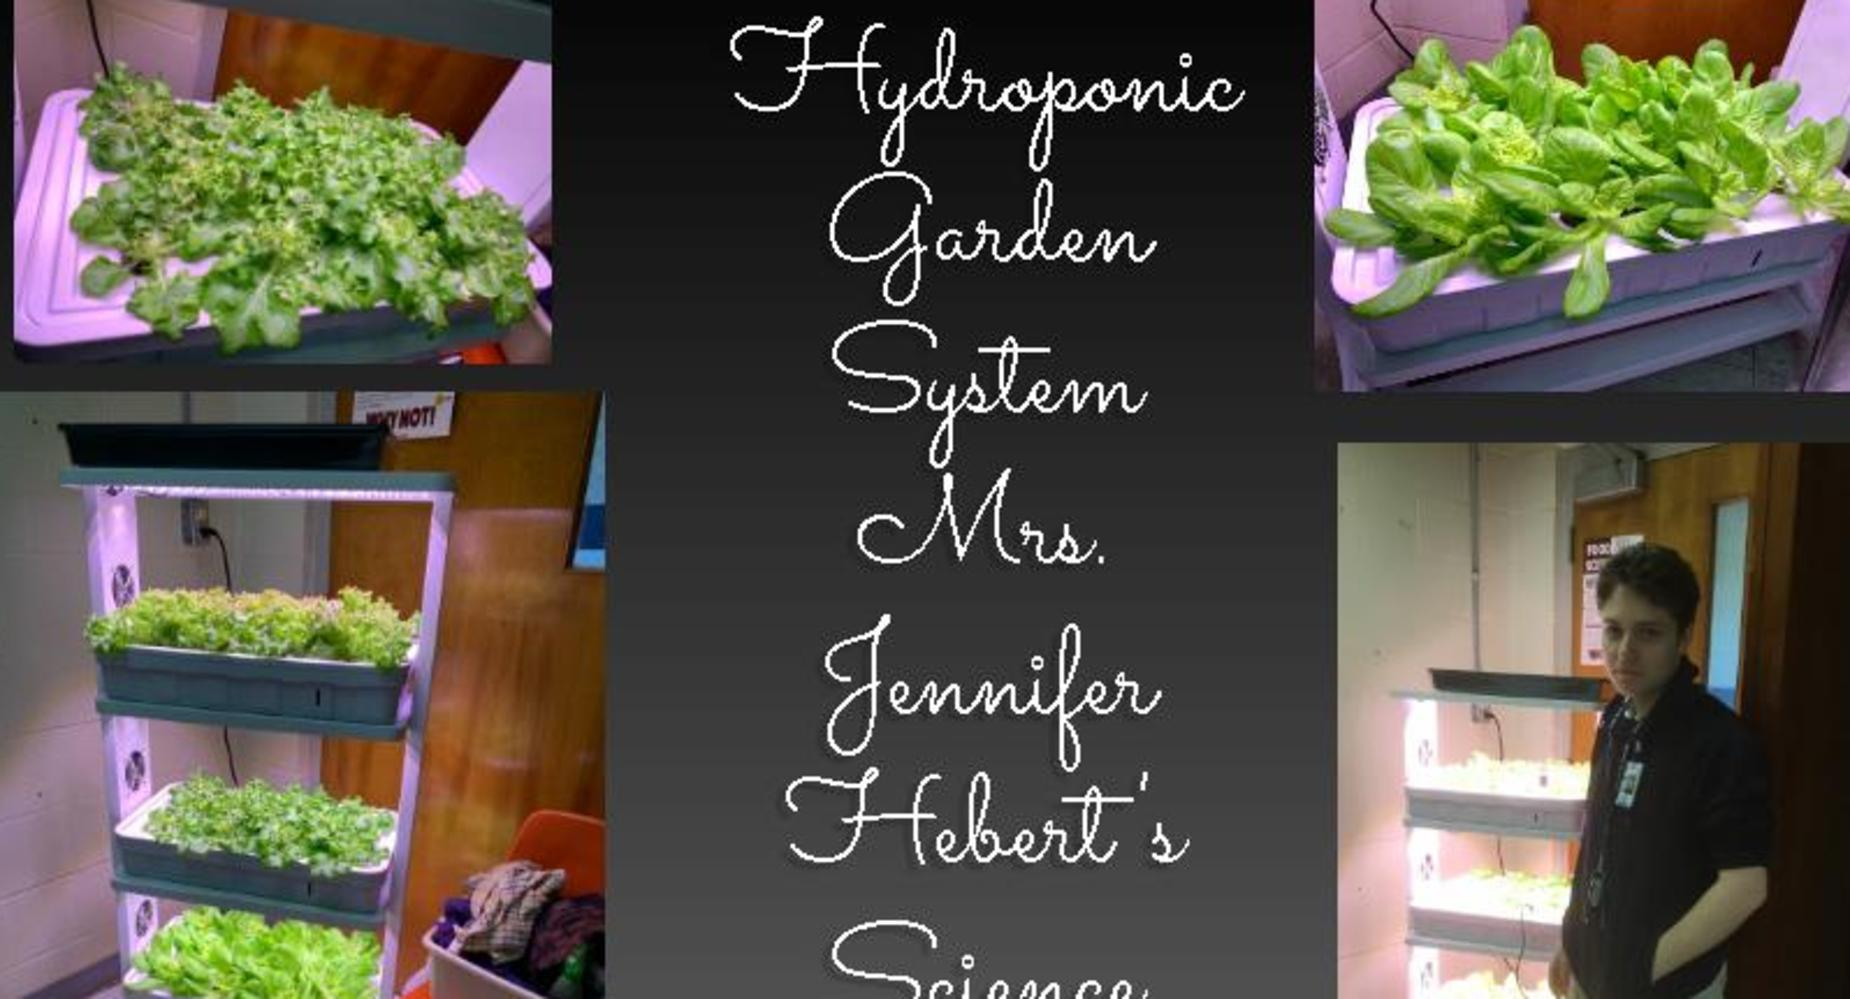 Mrs. Jennifer Hebert Hydroponic Gardeing System-Science Food Class